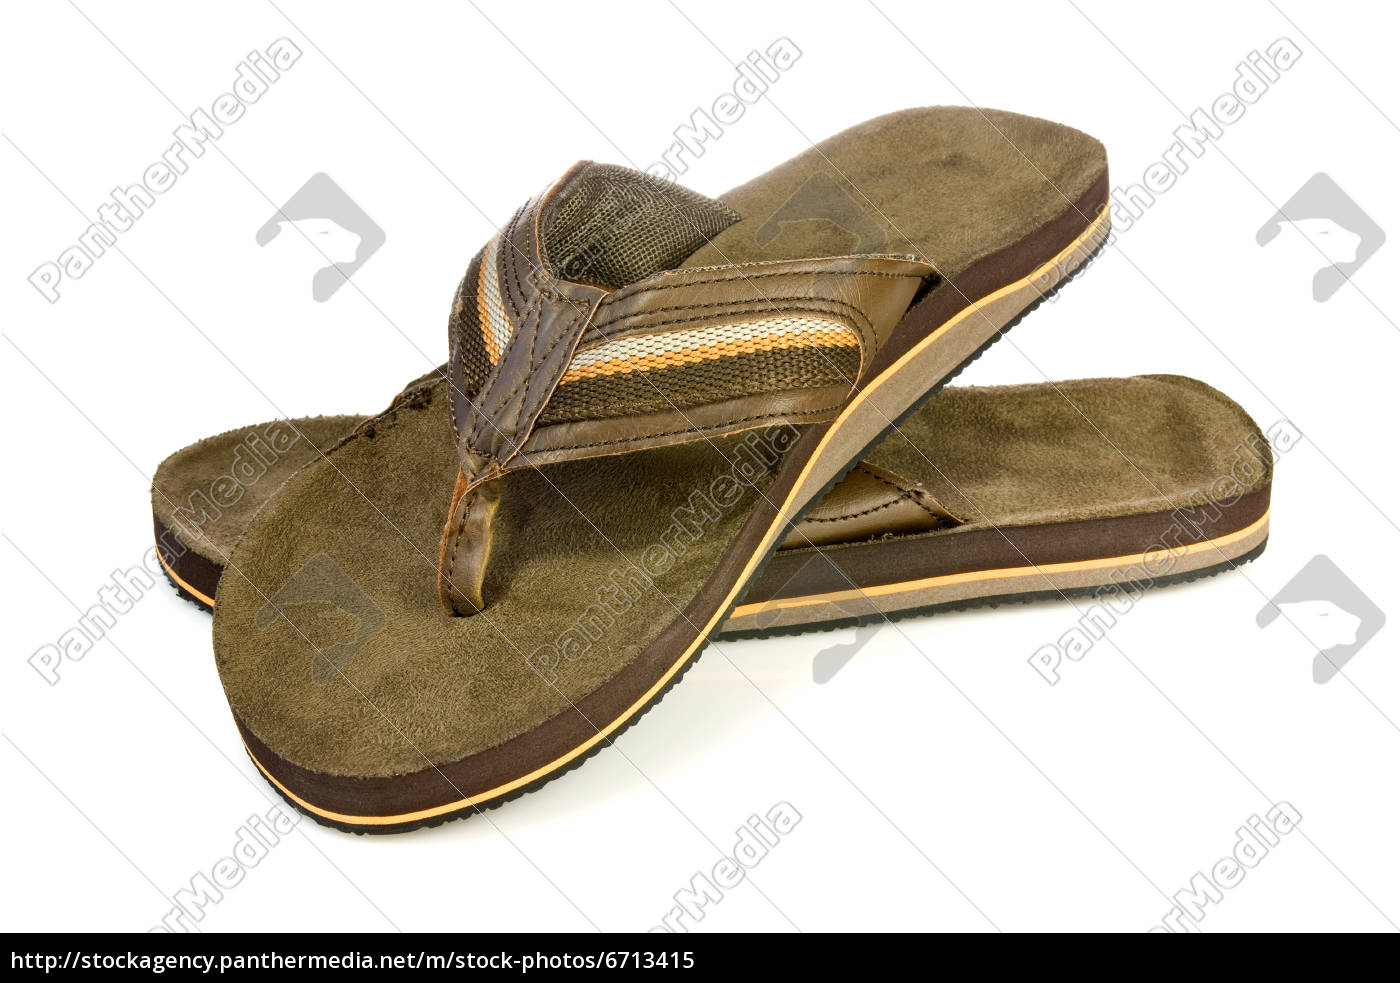 4dc4fa23538b78 Pair of men s flip flops - Royalty free image -  6713415 ...